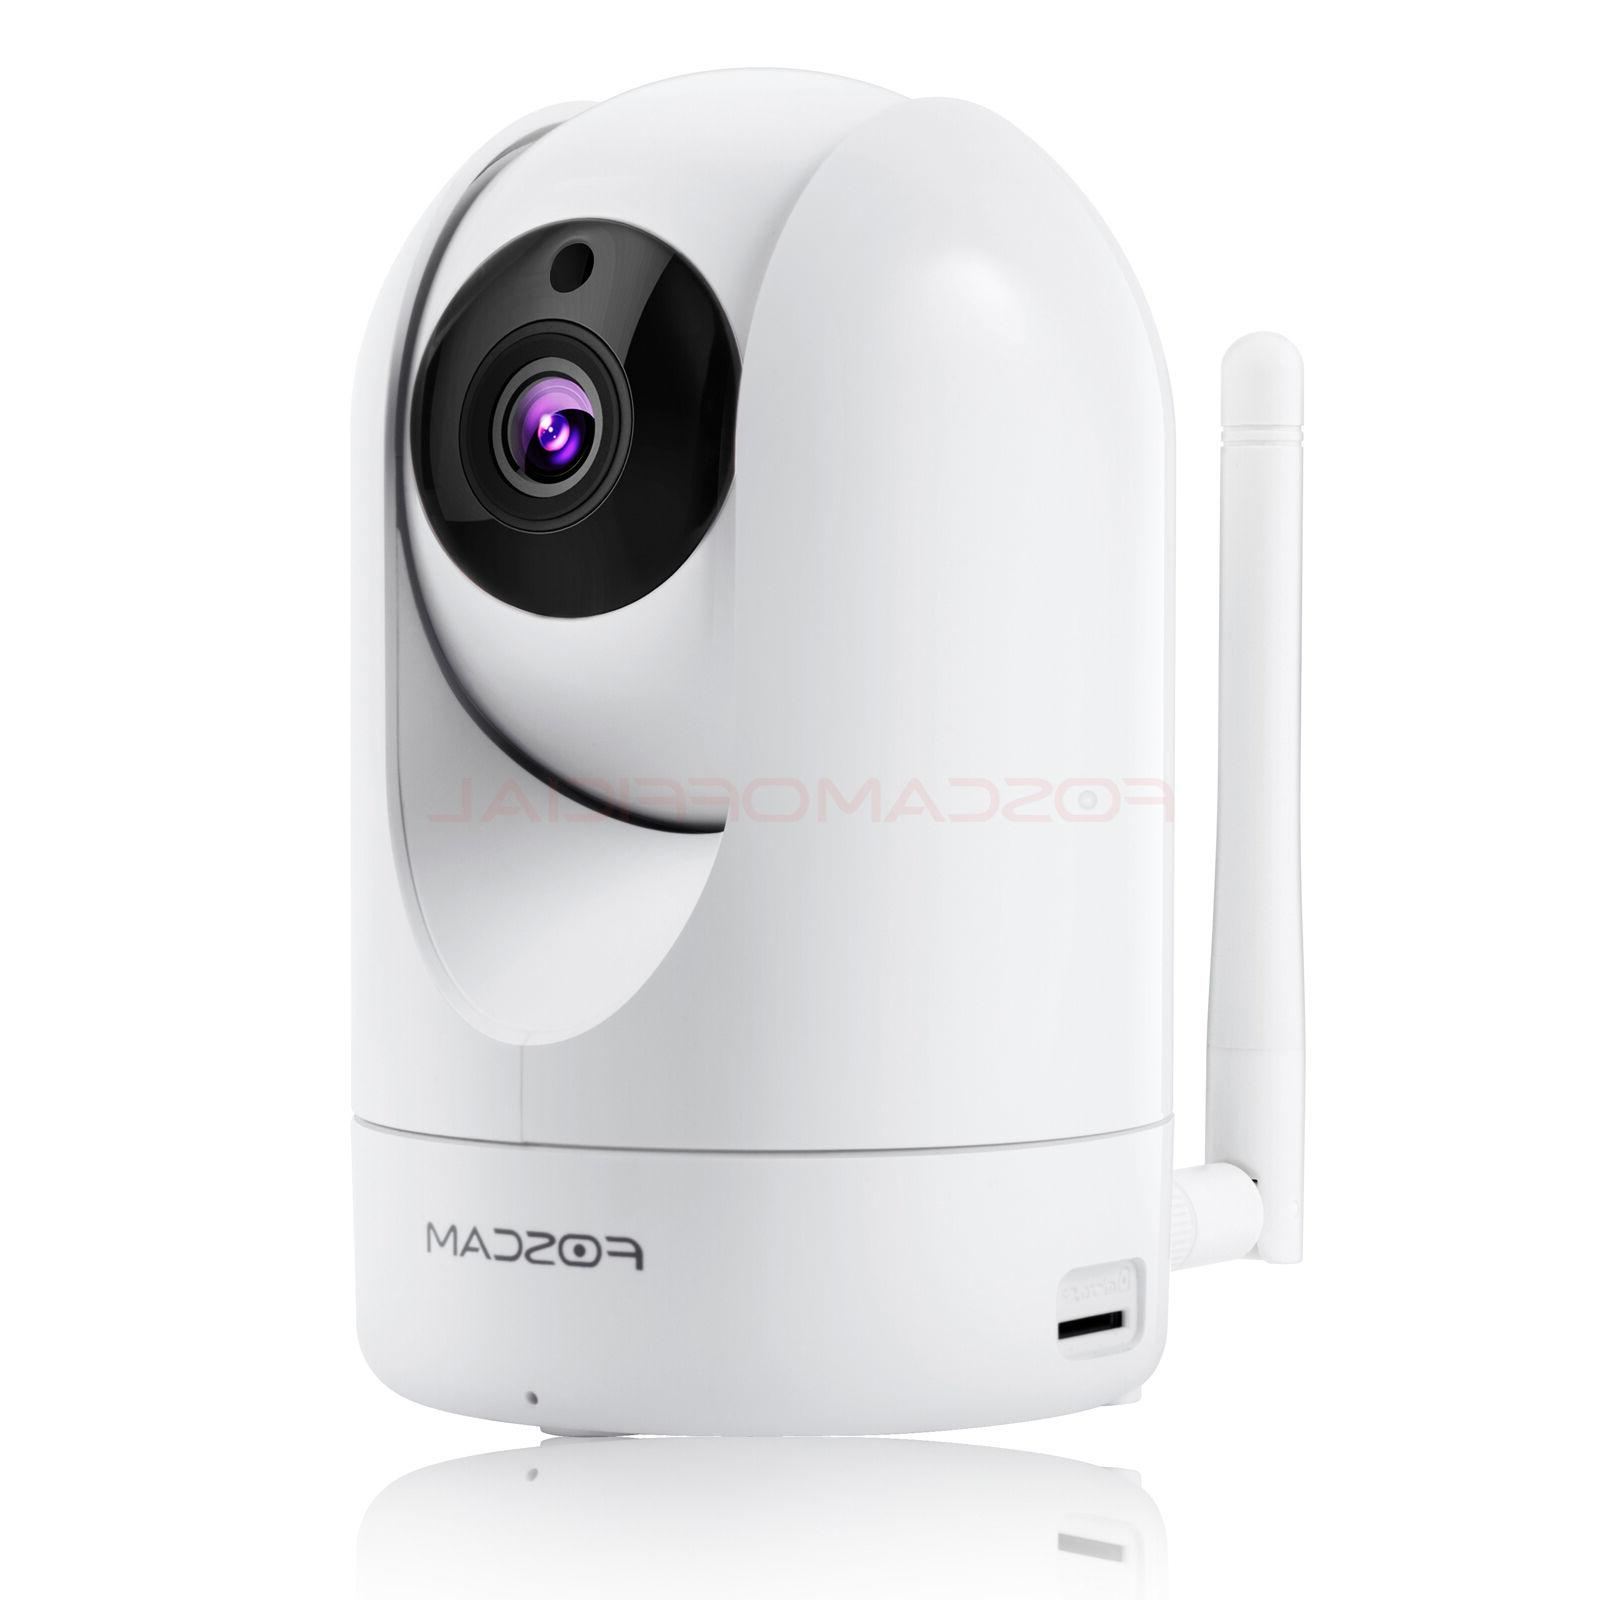 Foscam R4 Ultra 1440P 4.0MP Pan Zoom Wired IP Cameras